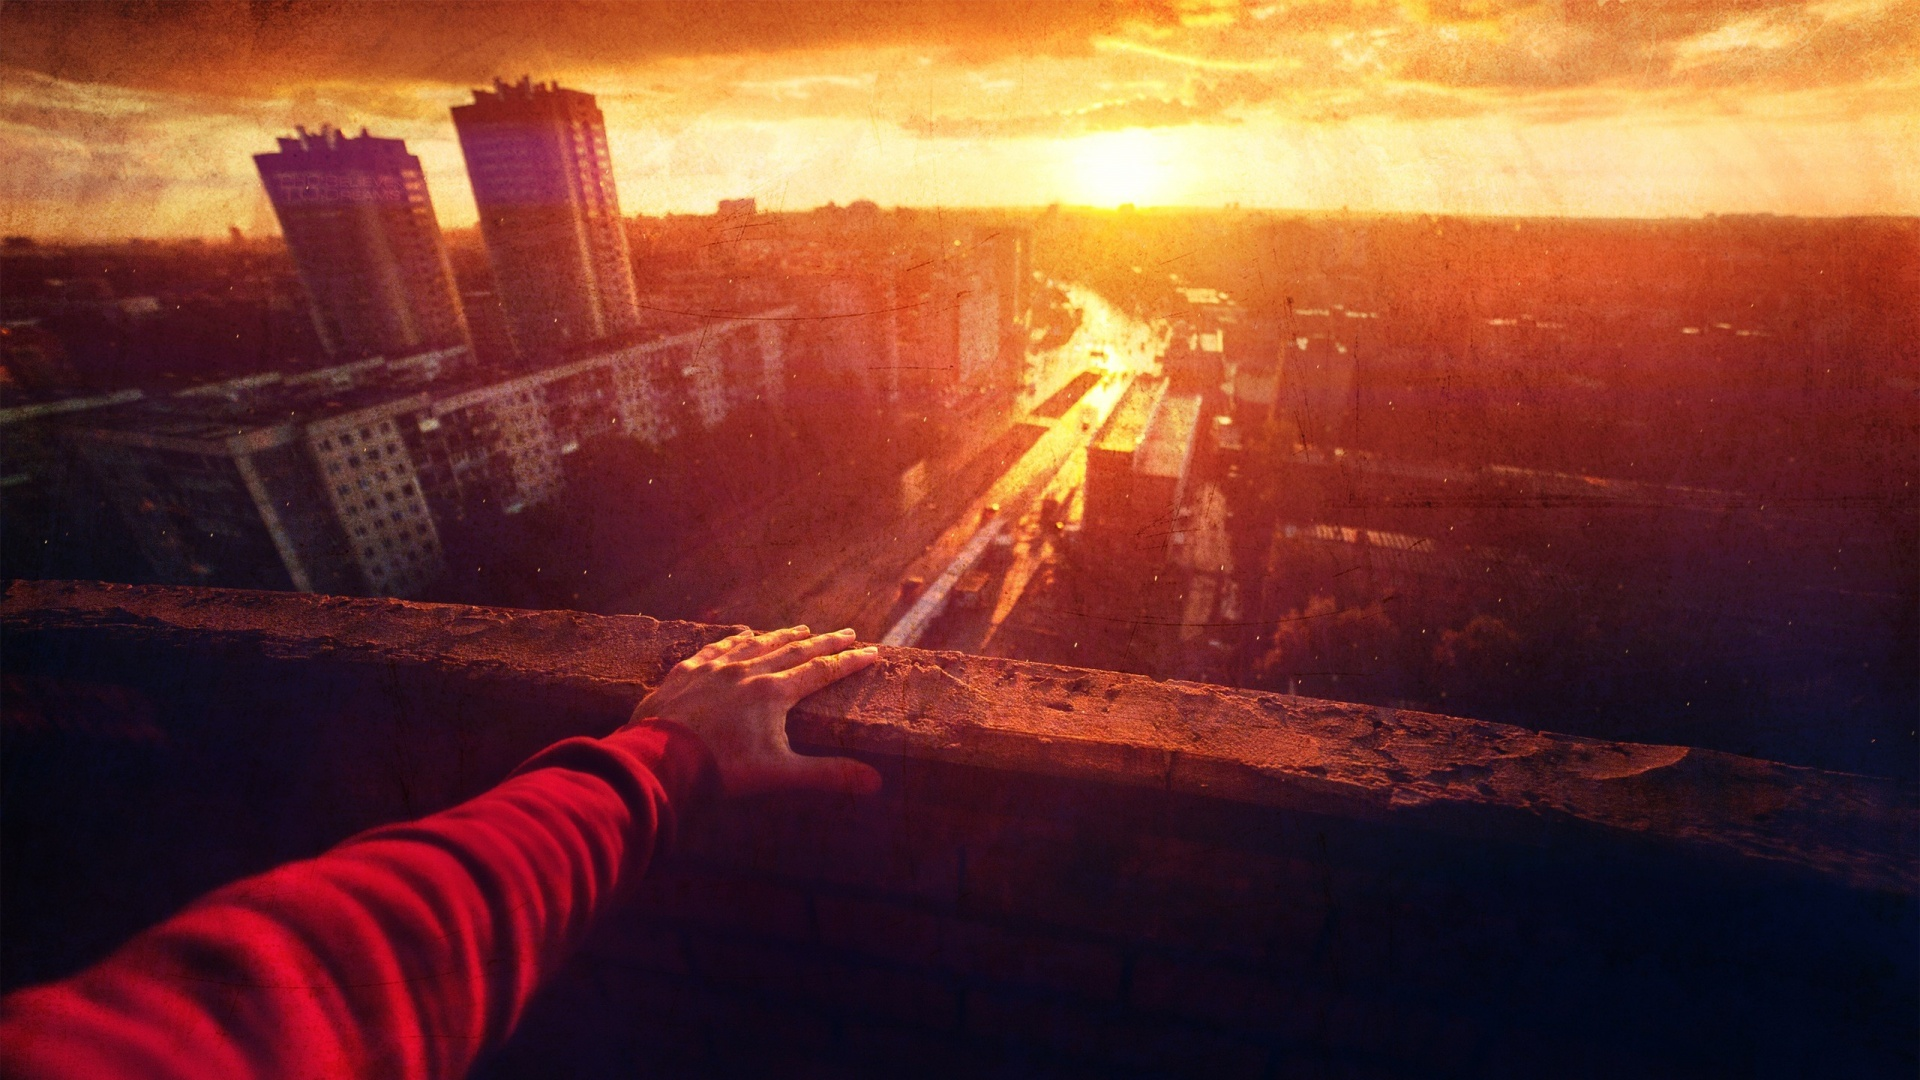 1920x1080 sunset over the city desktop pc and mac wallpaper